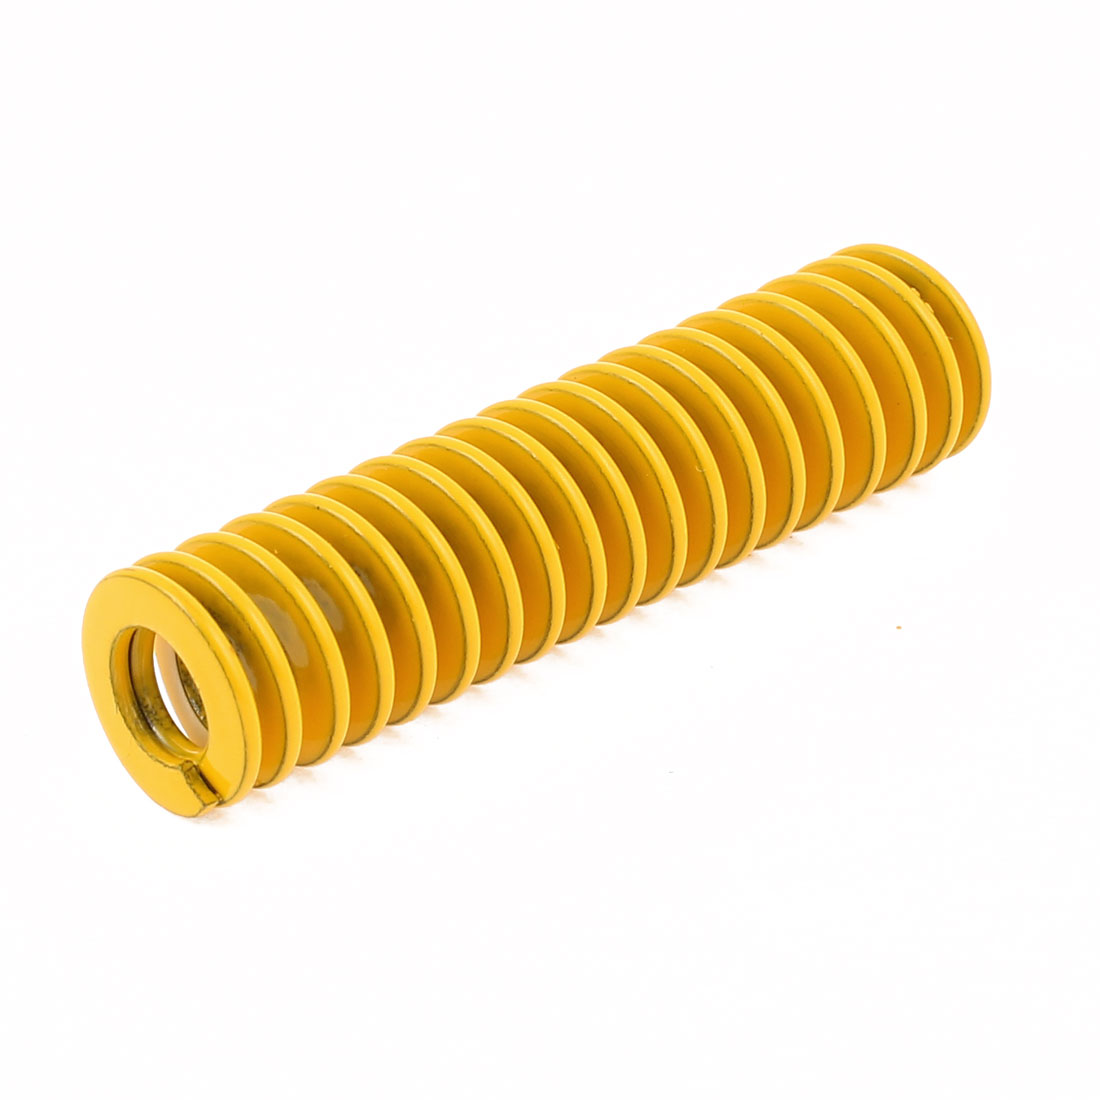 Yellow Alloy Steel Light Load Press Flat Coil Compression Die Spring 14mm x 7mm x 55mm